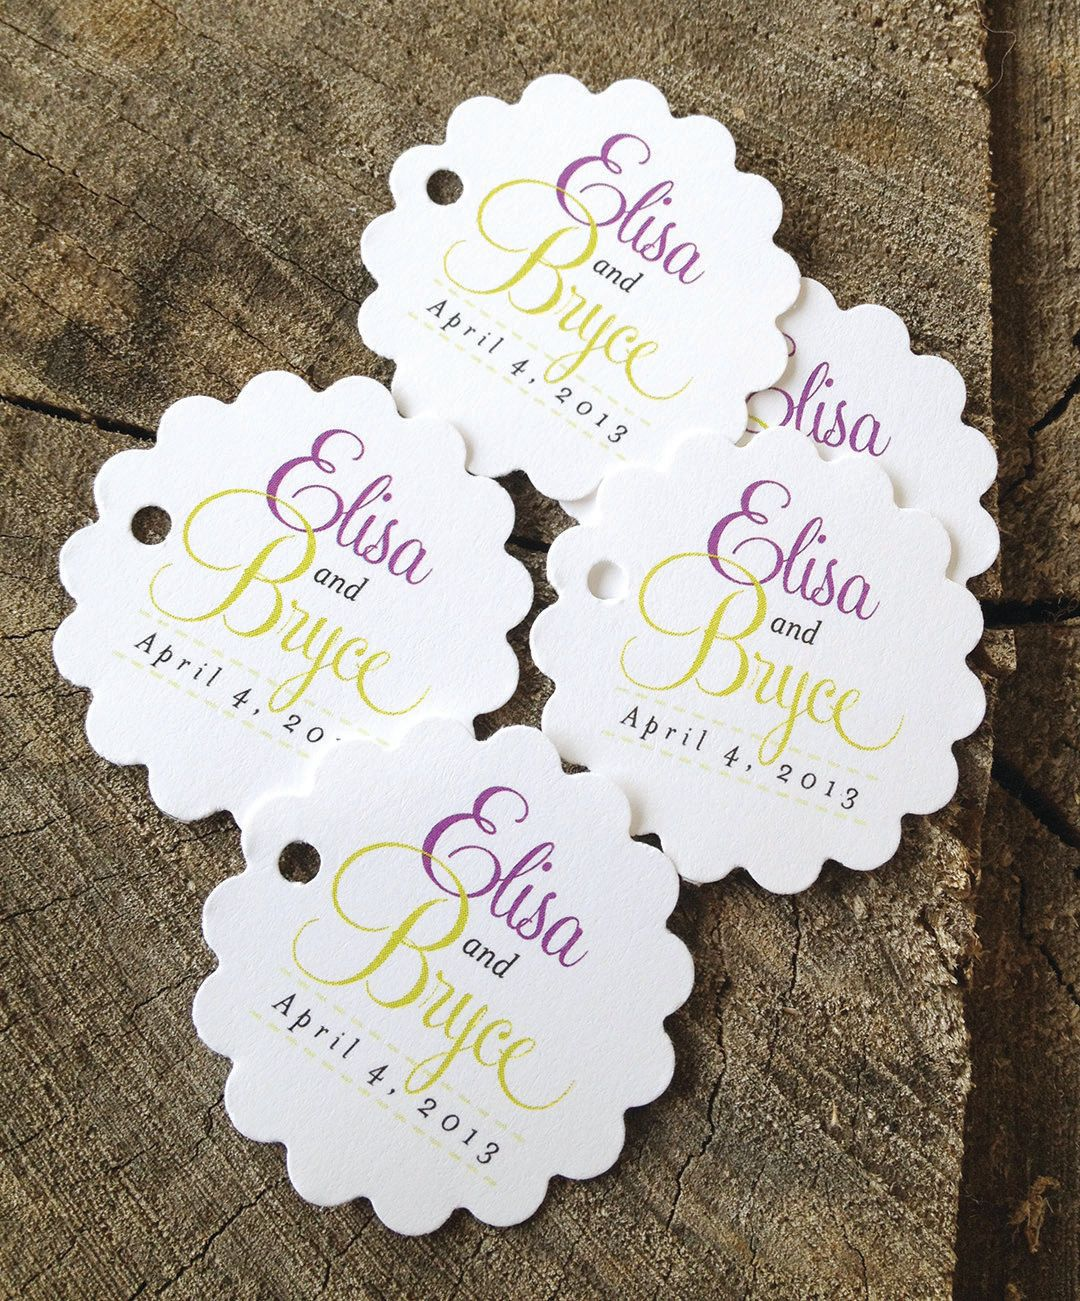 Script Wedding Favor Tags | Party ideas | Pinterest | Wedding favor ...